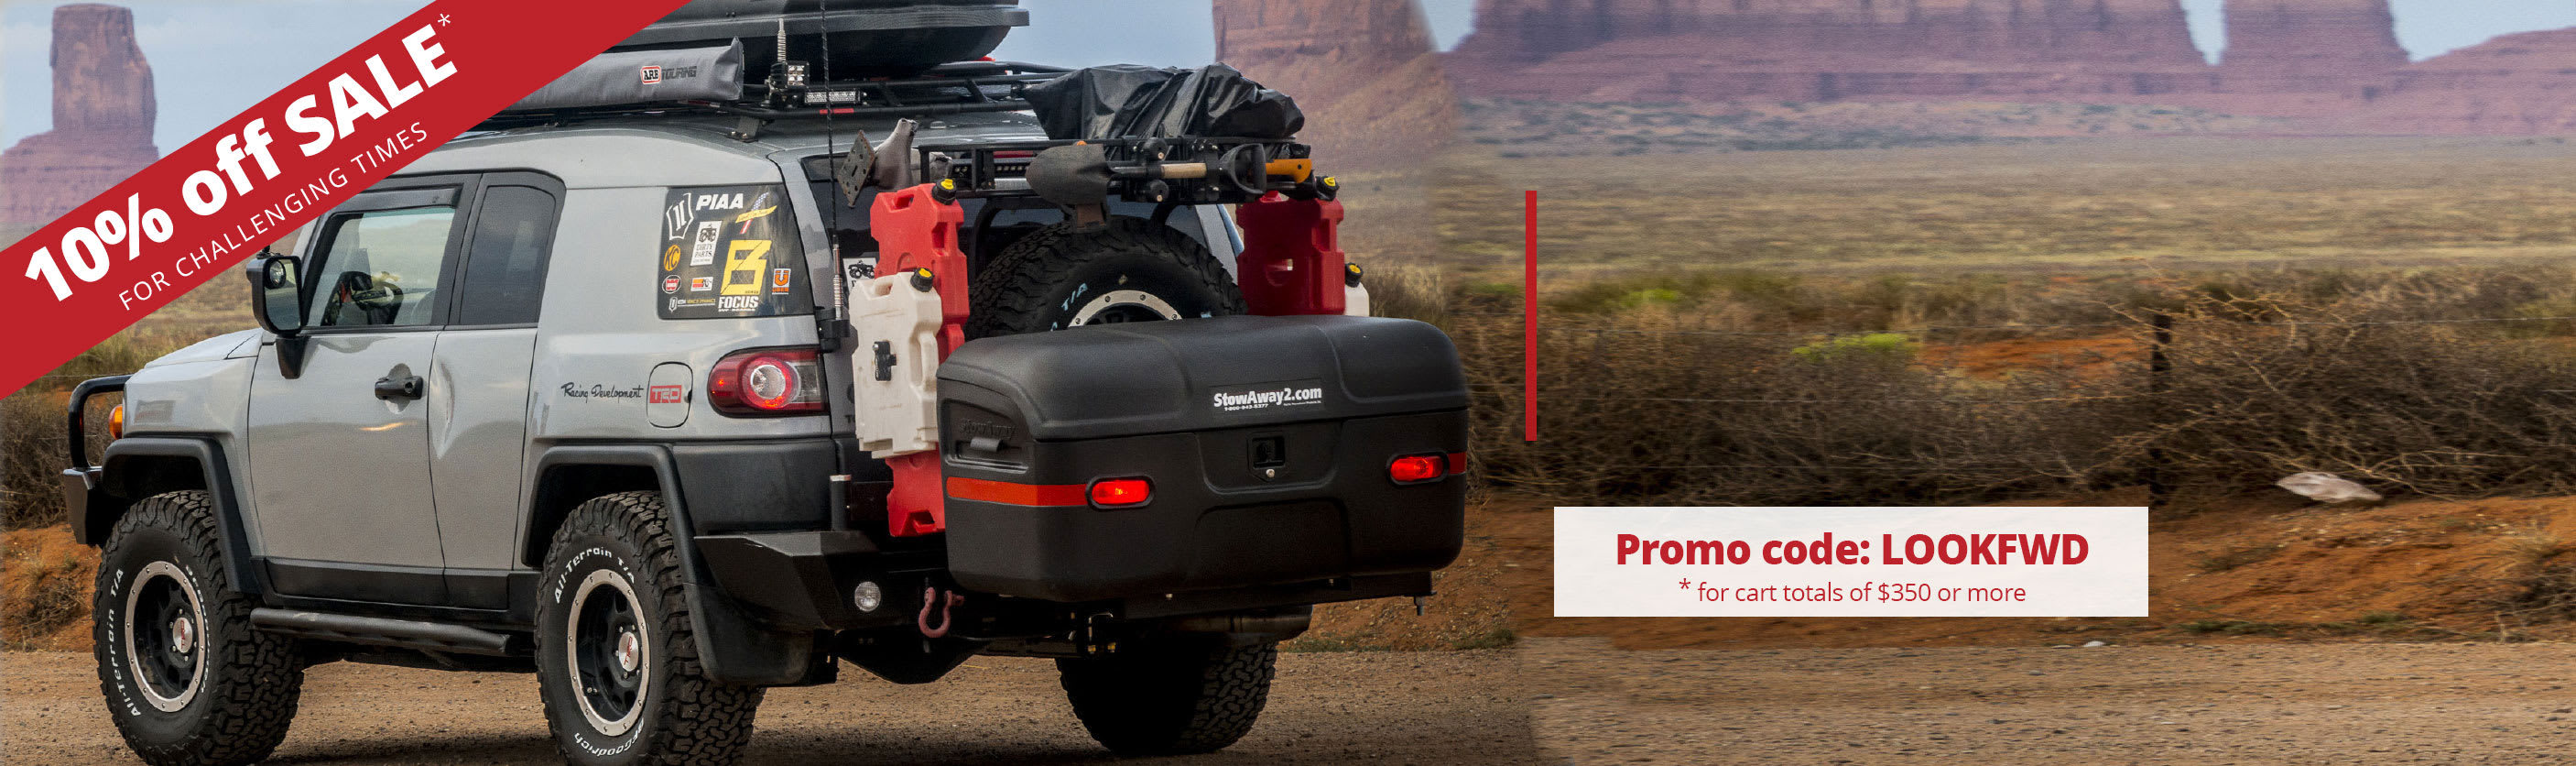 Hitch Cargo Box and Carrier solutions for your summer road trips.